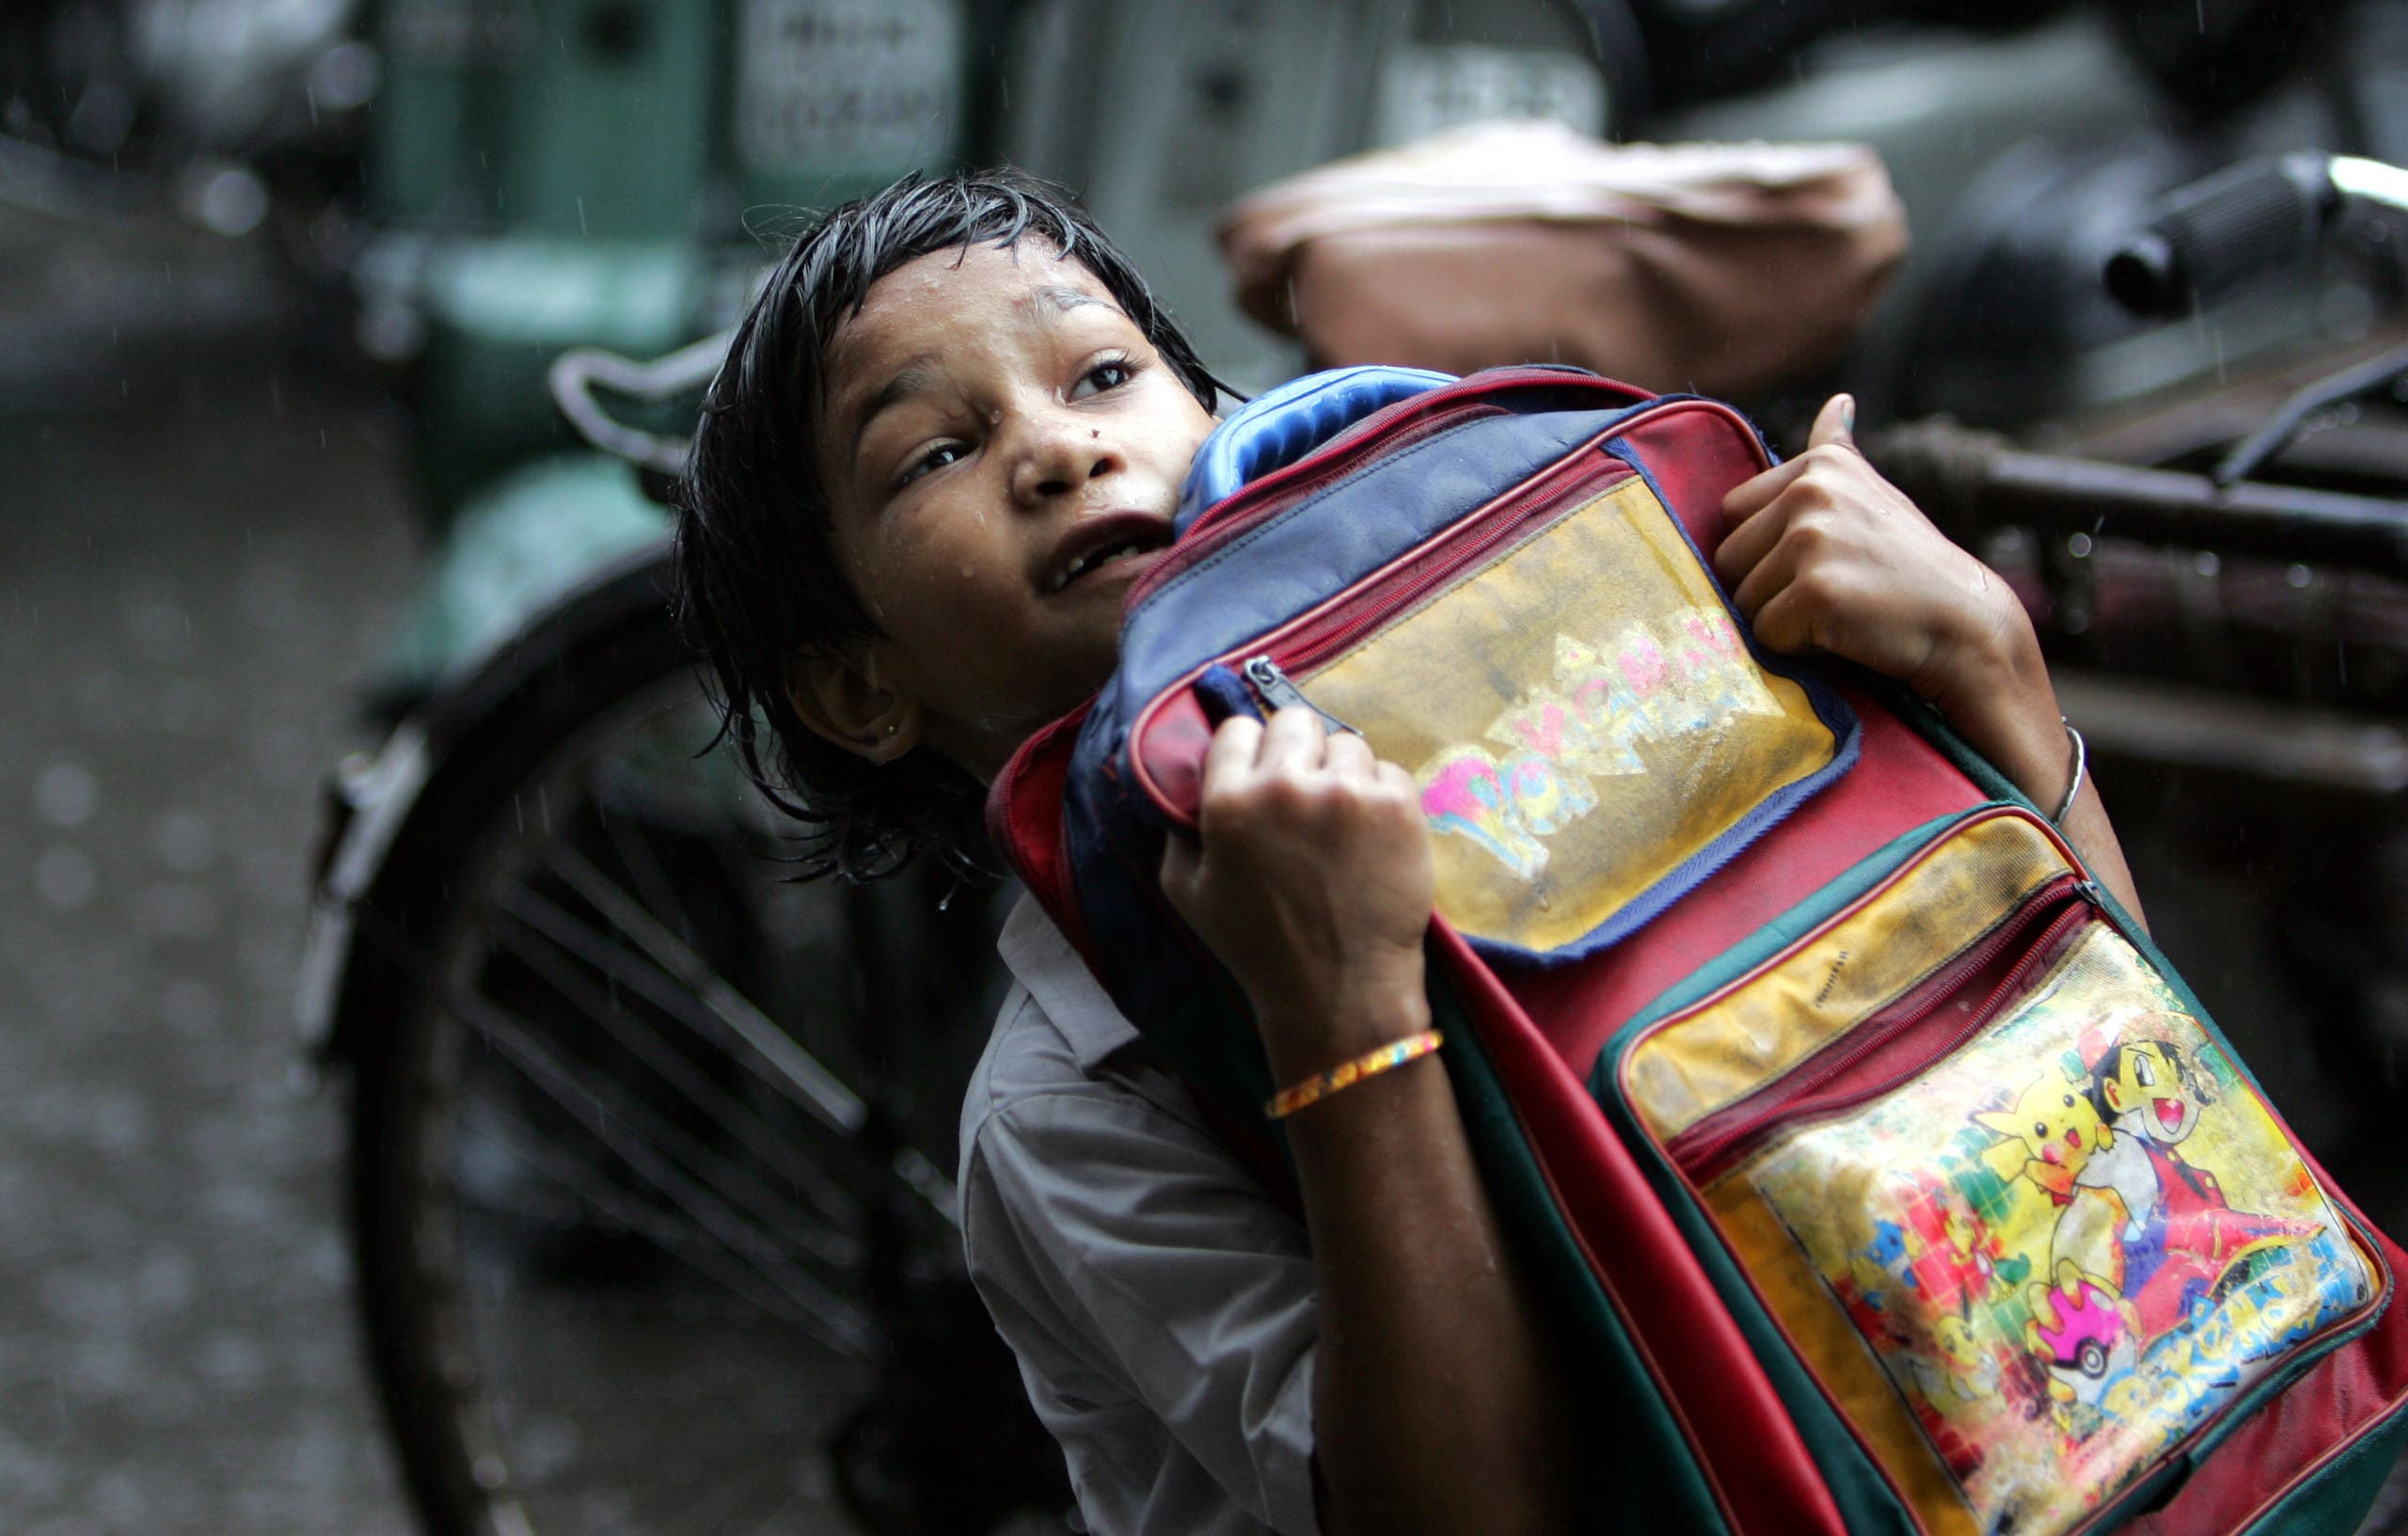 A young student struggles to lift up her school under rains in New Delhi on July 4, 2007. (File photo: AP)